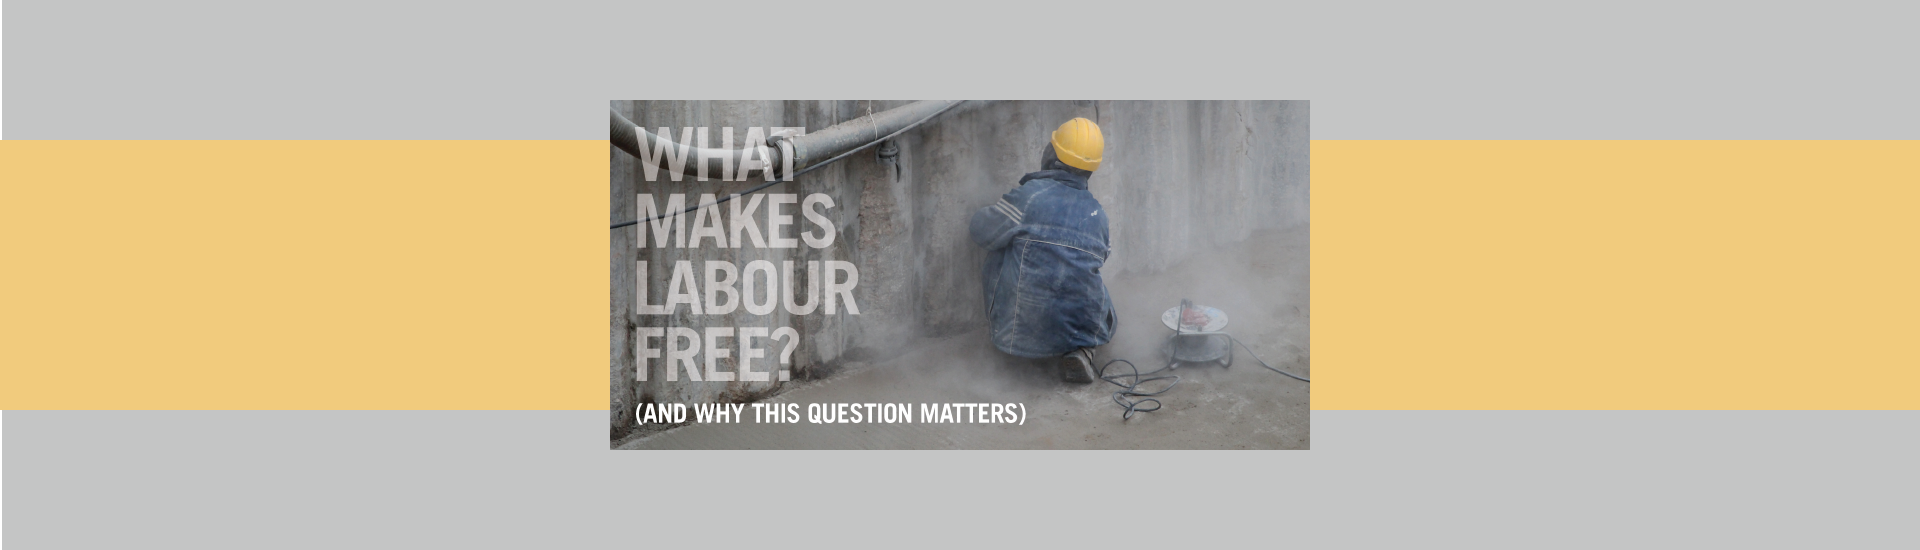 What Makes Labour Free (and why that matters)